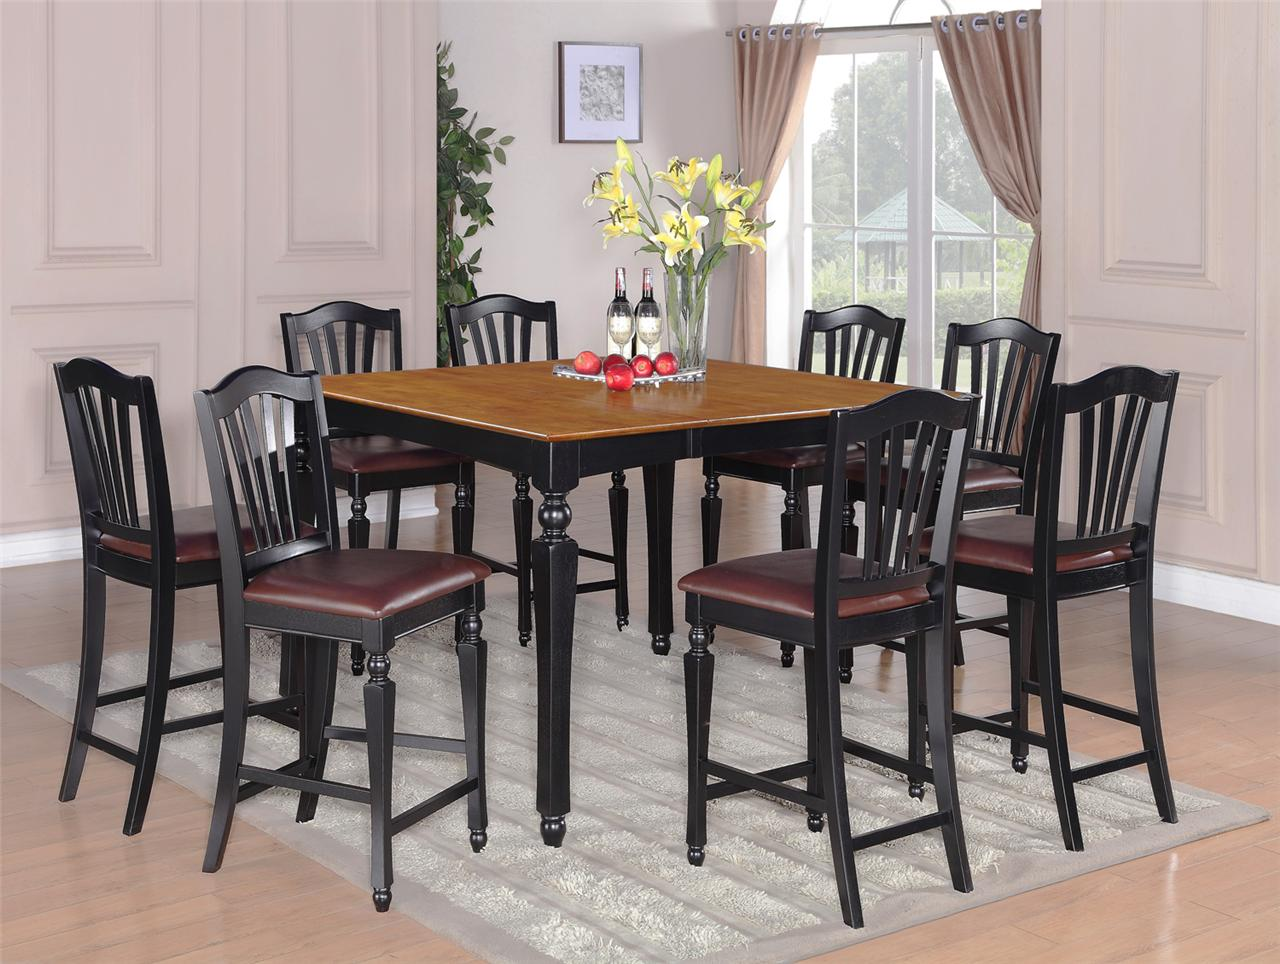 5pc square counter height dining room table w 4 chairs 24 stool black